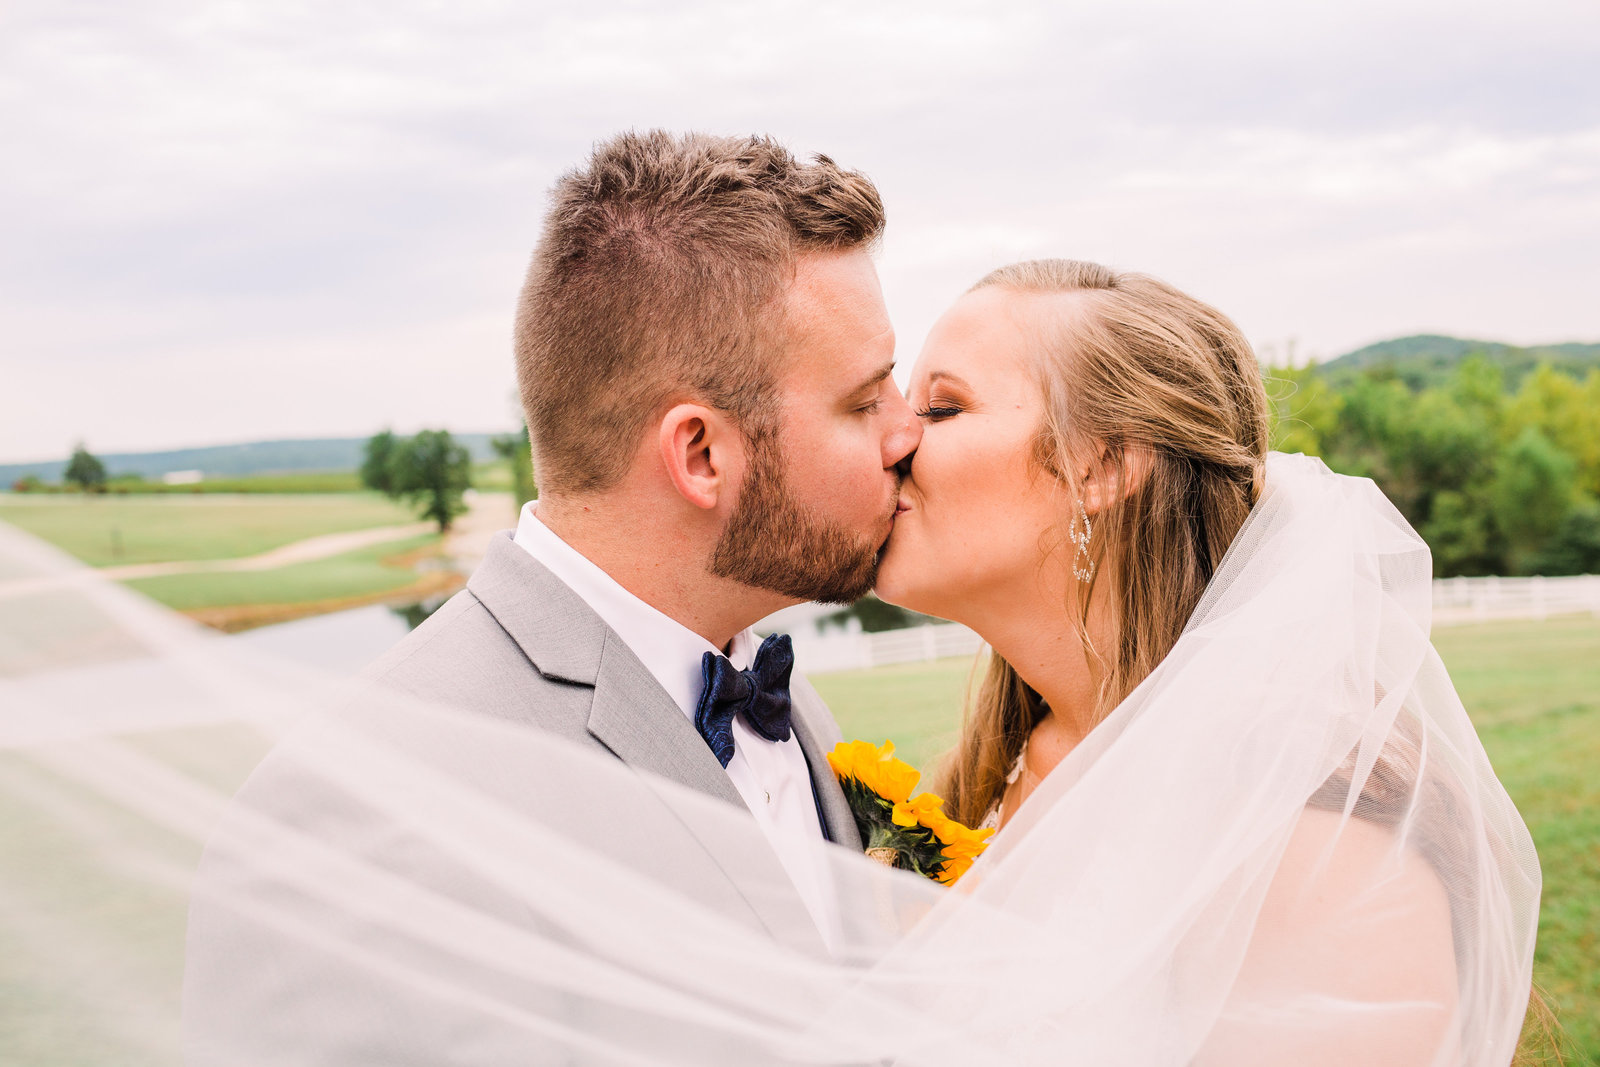 Bride and Groom, Whitney and Derik, embrace in a kiss as Whitney's veil is swept by the wind at Chaumette Winery.